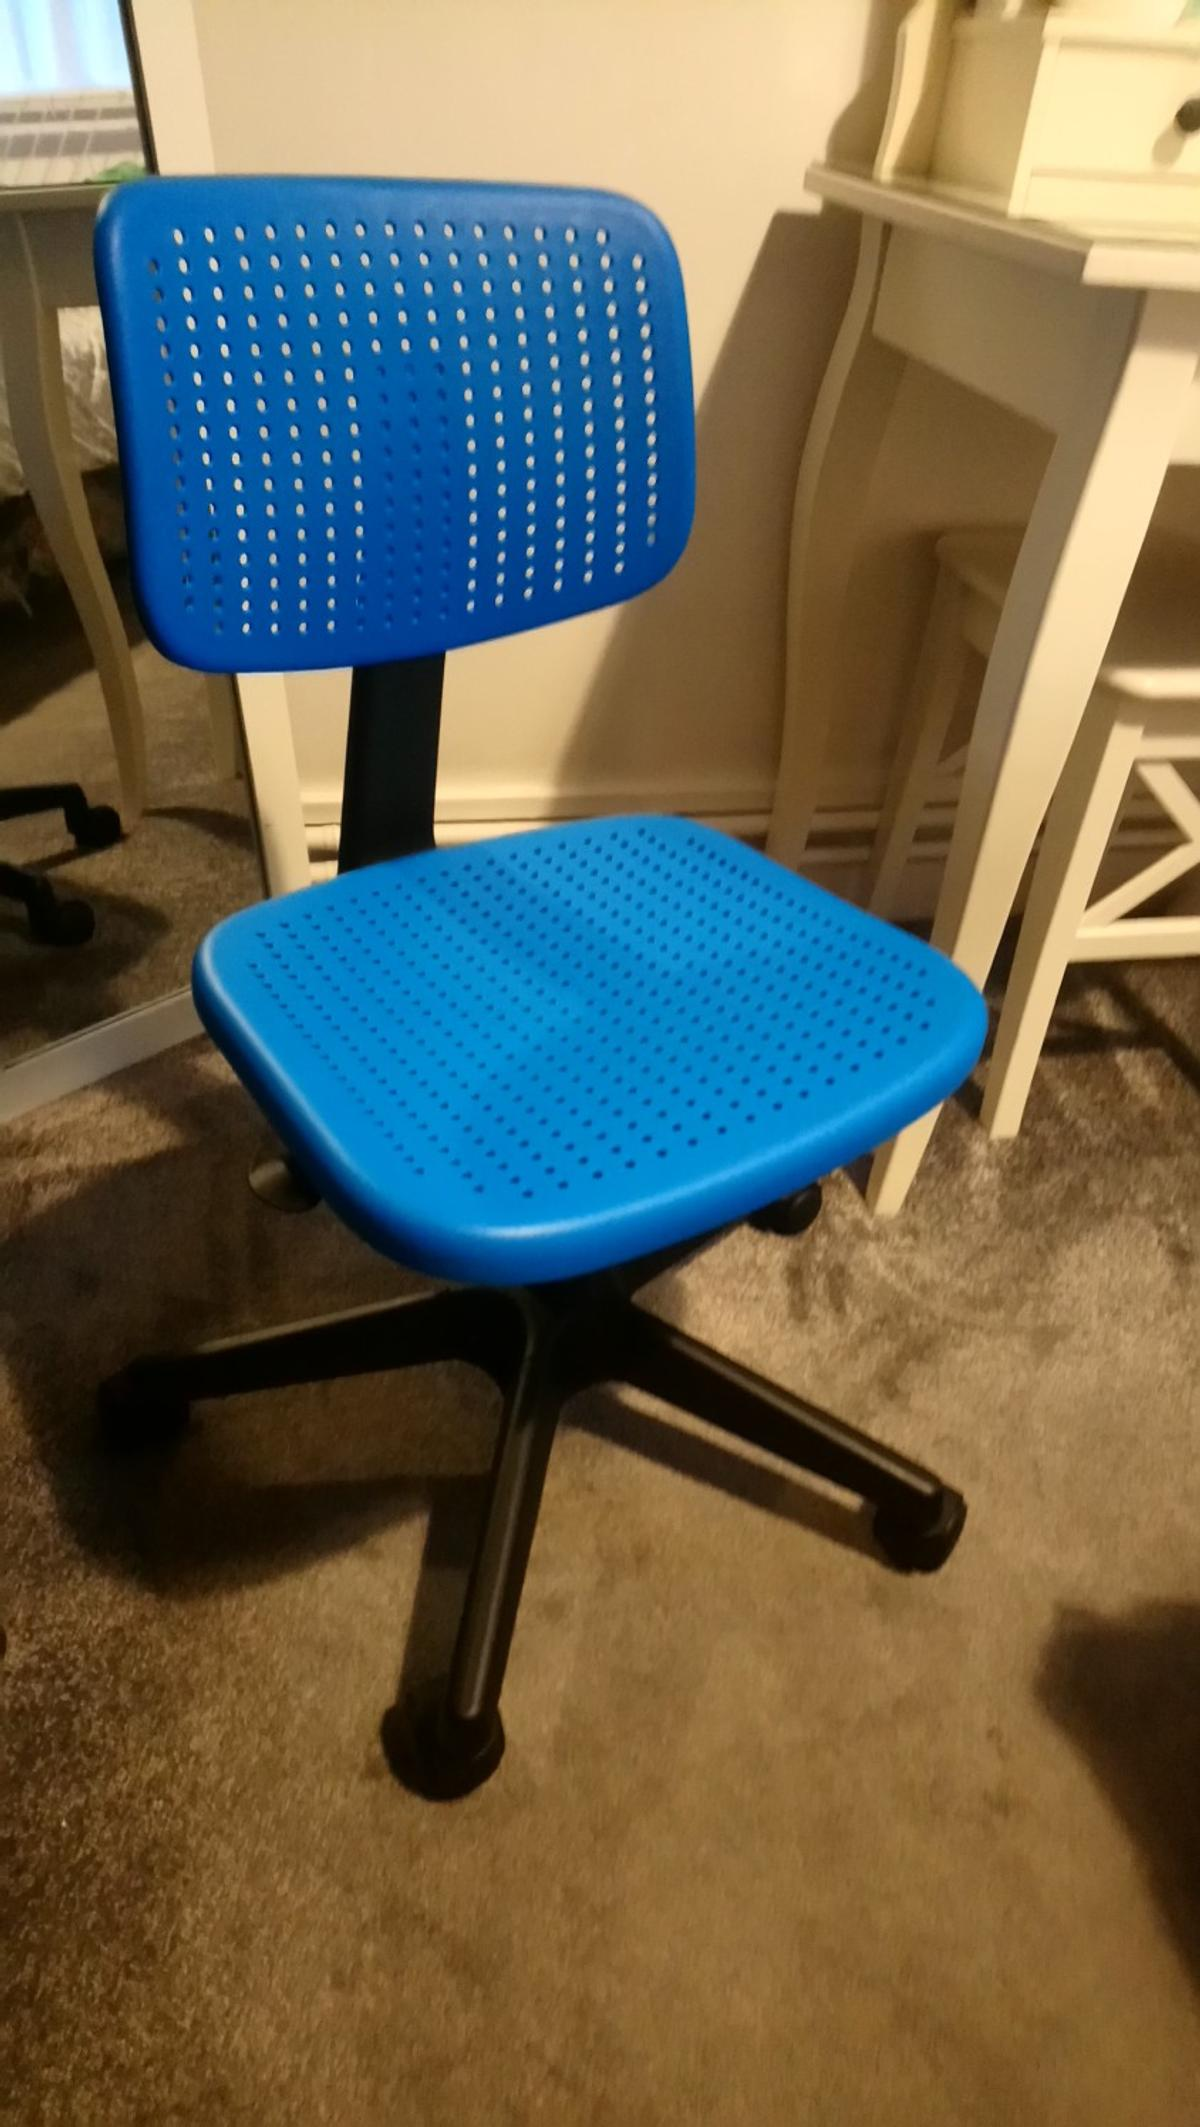 Ikea Alric Swivel Desk Chair In Kt2 London For 8 00 For Sale Shpock